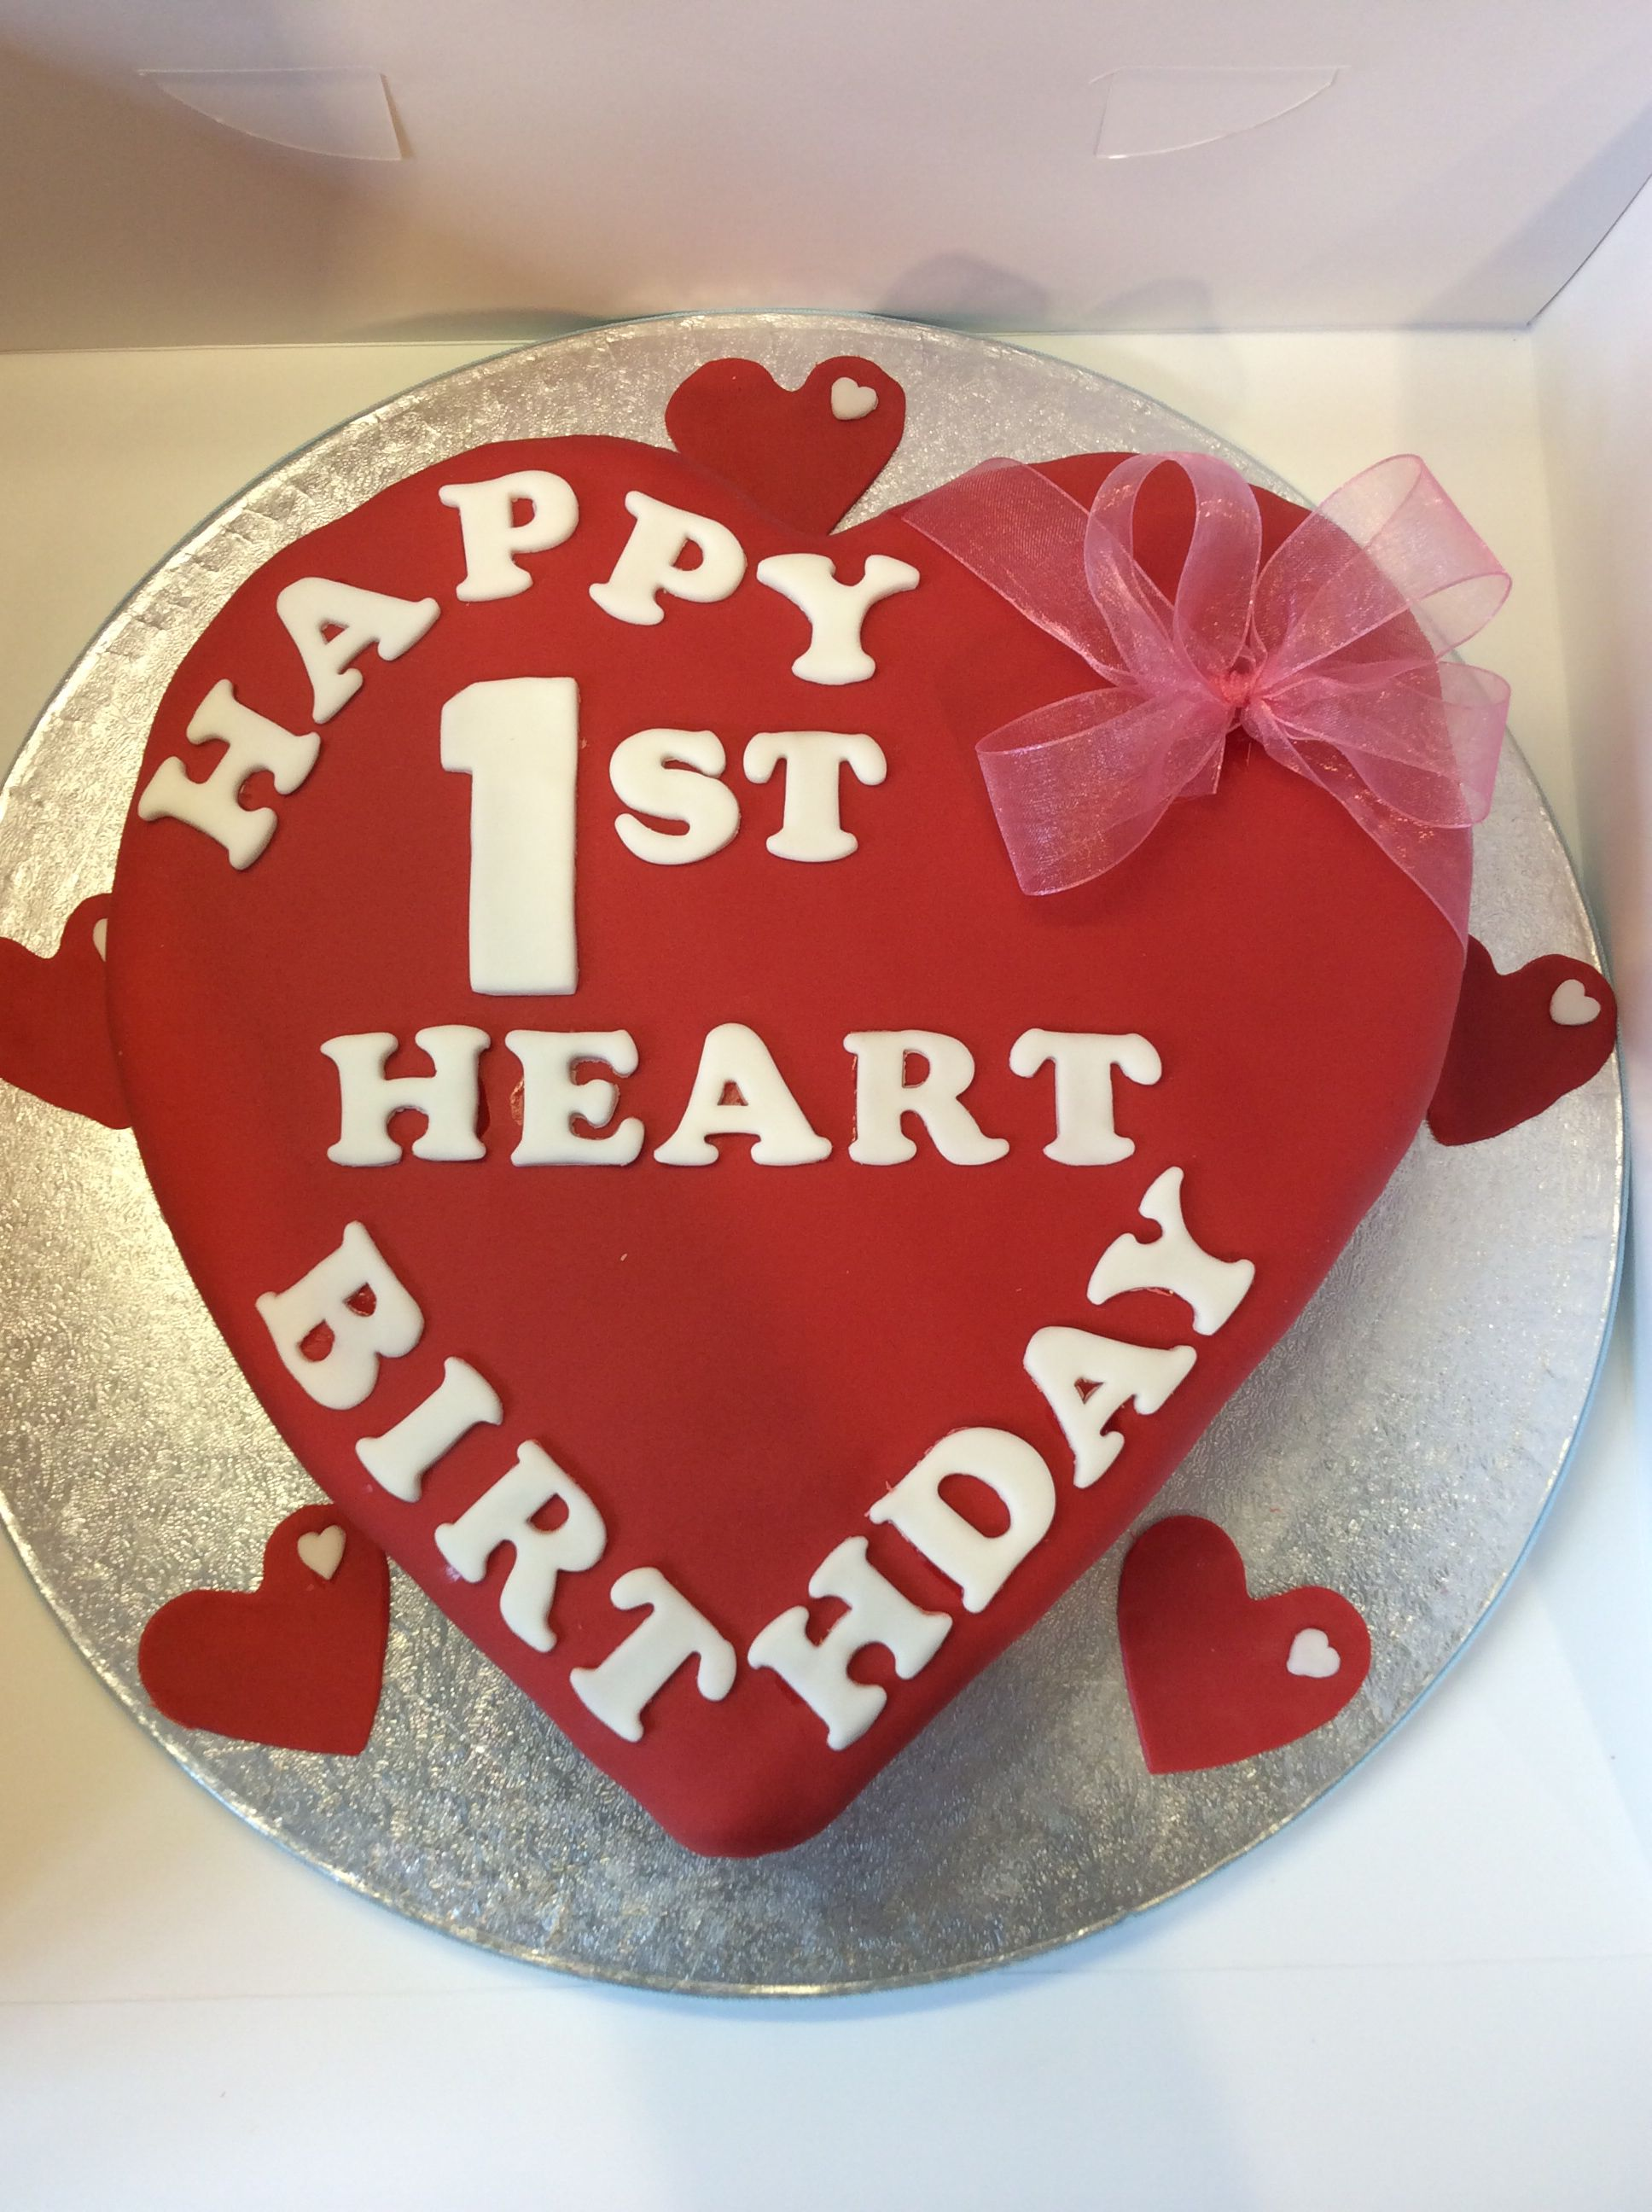 1st year anniversary / birthday for a Heart Transplant